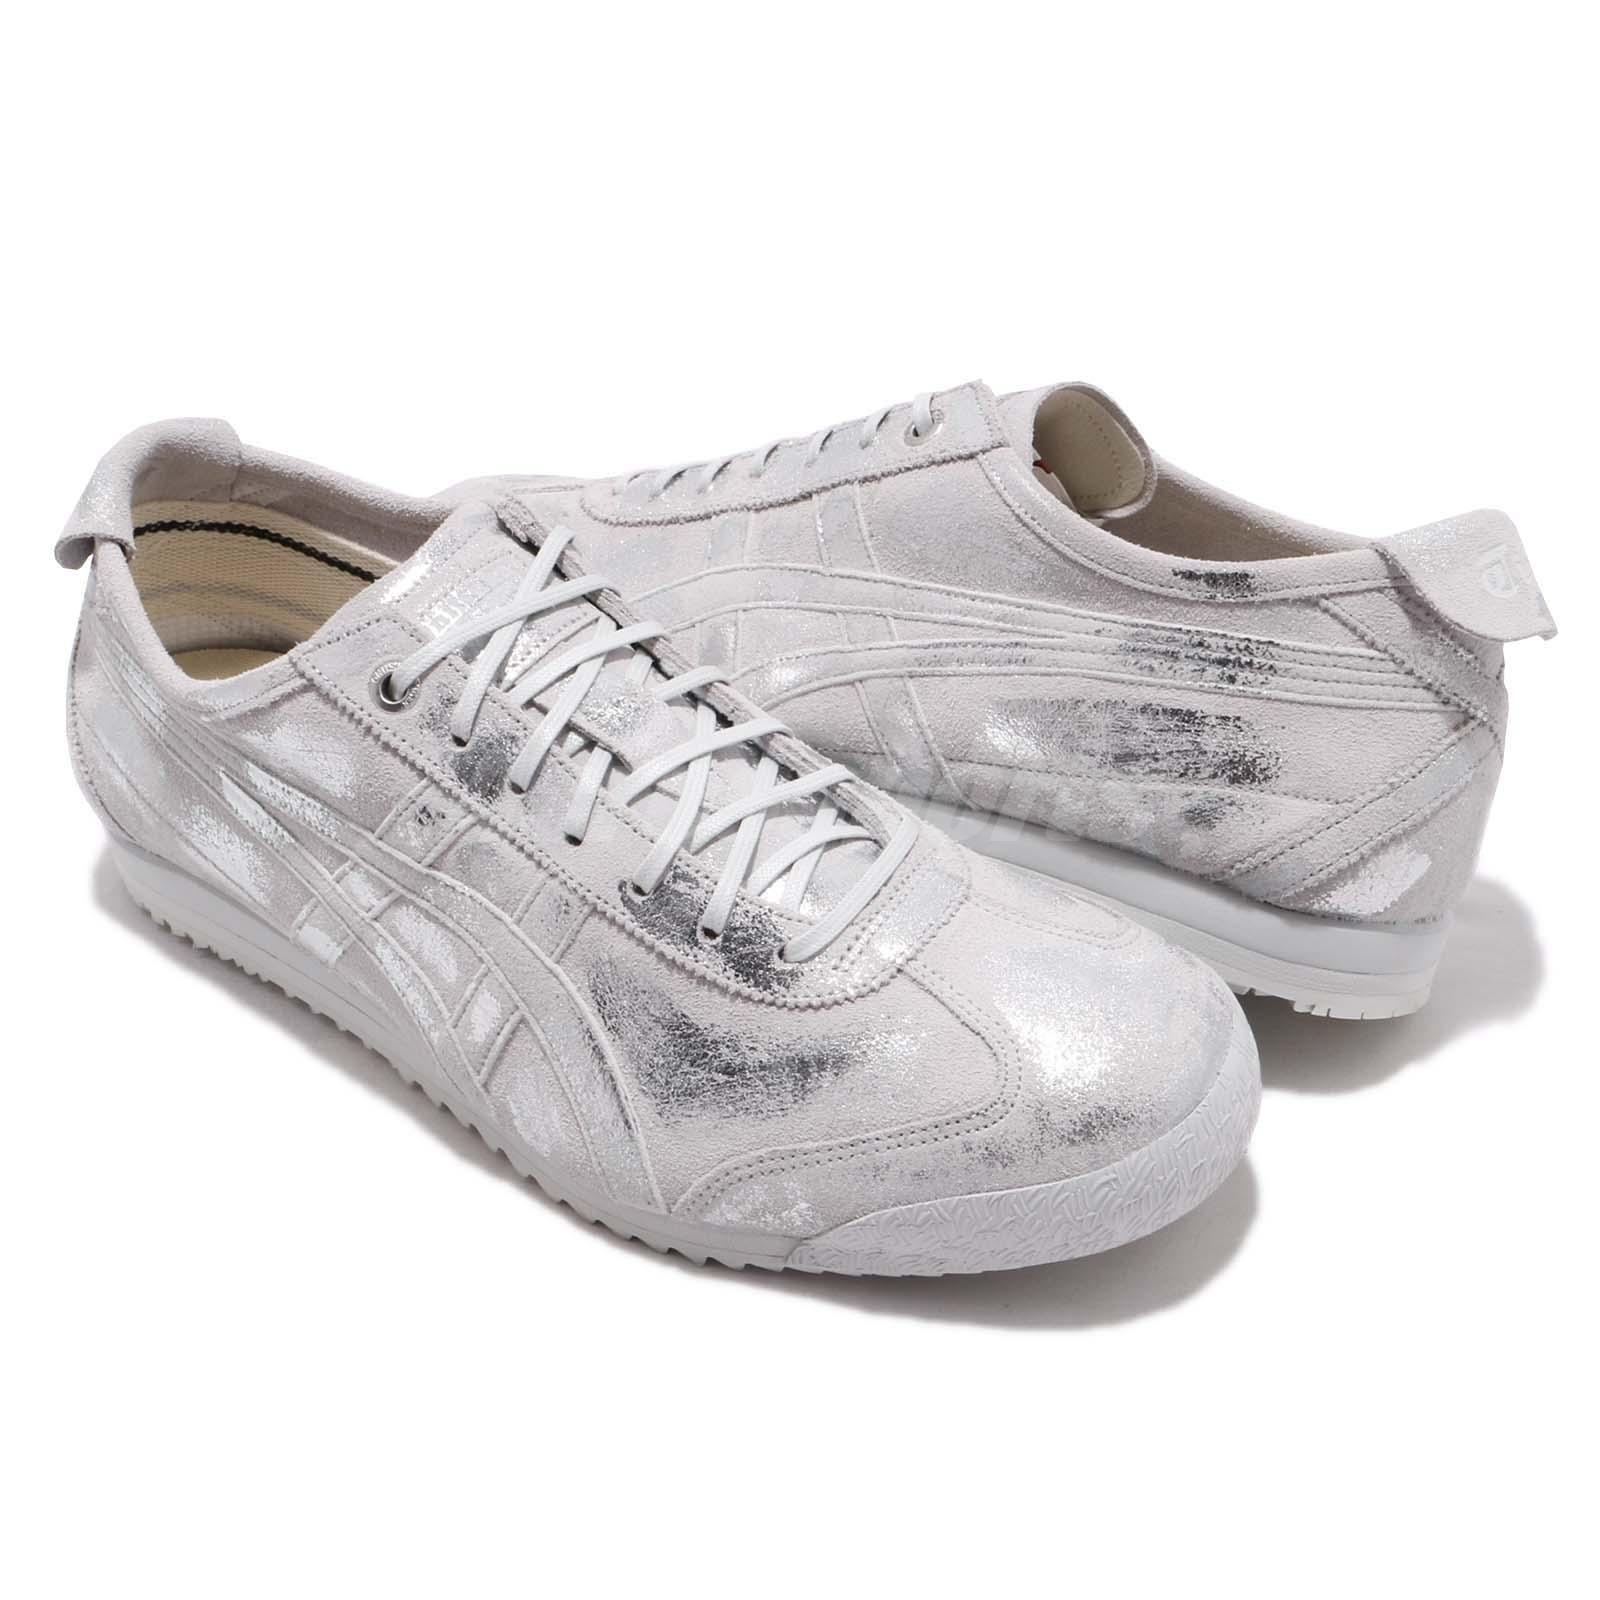 low priced bd656 1ad9d Shoes Asics Onitsuka Tiger Mexico 66 Glacier Grey Silver Men ...